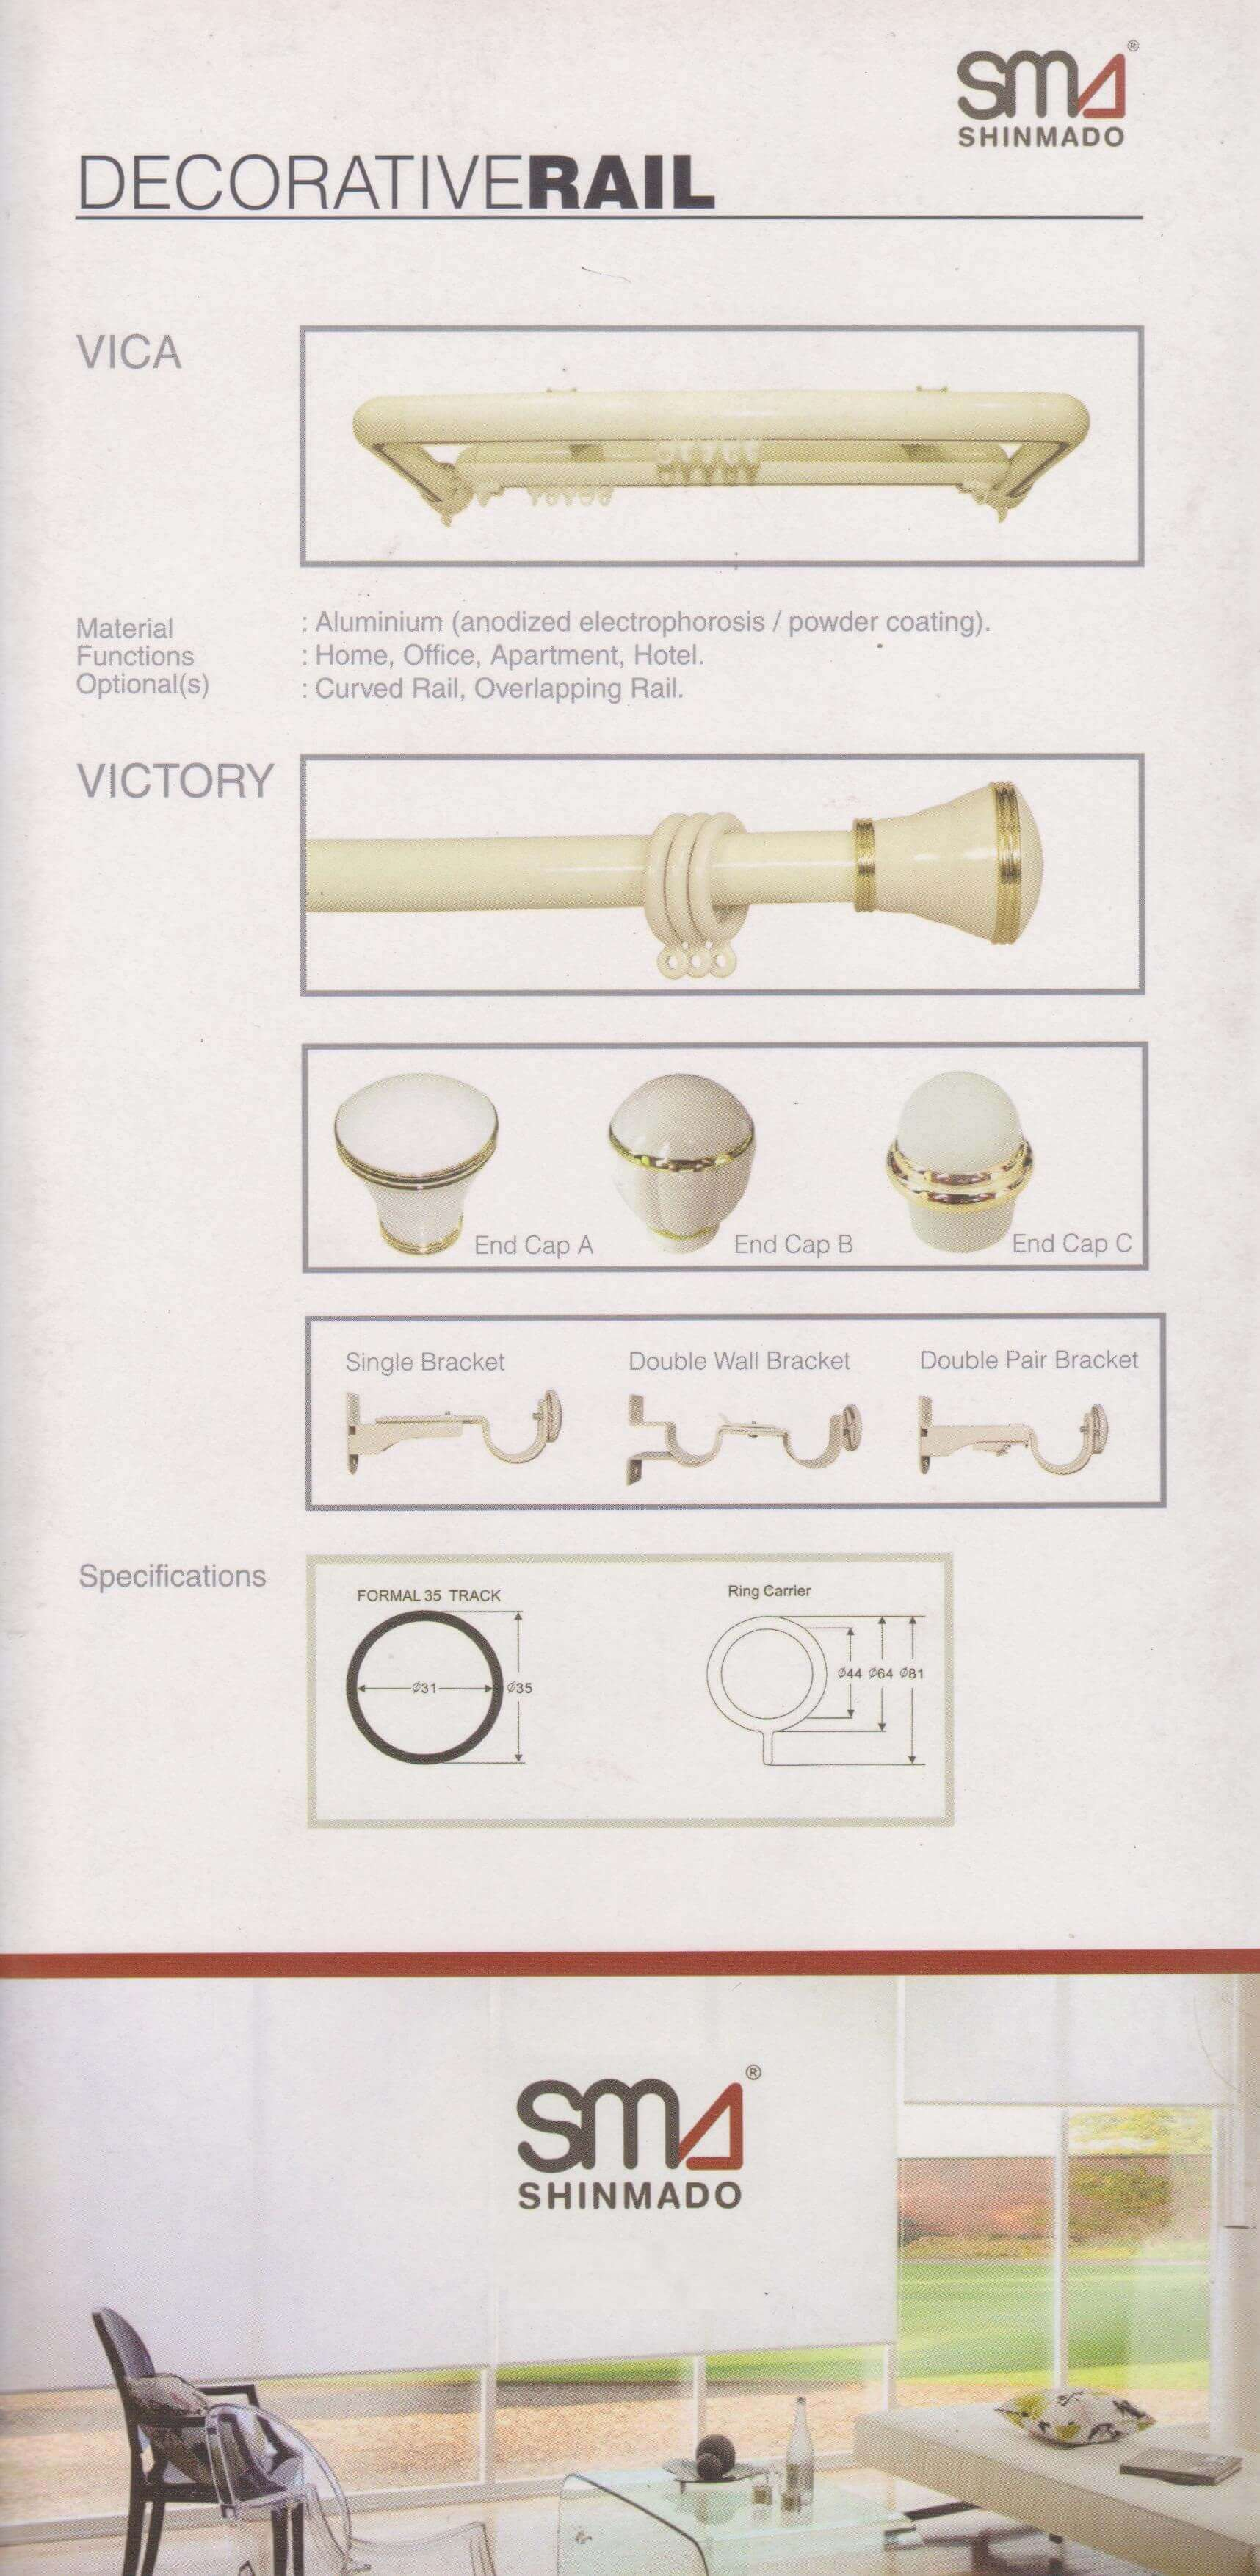 Shinmado Vica Victory decorative rail